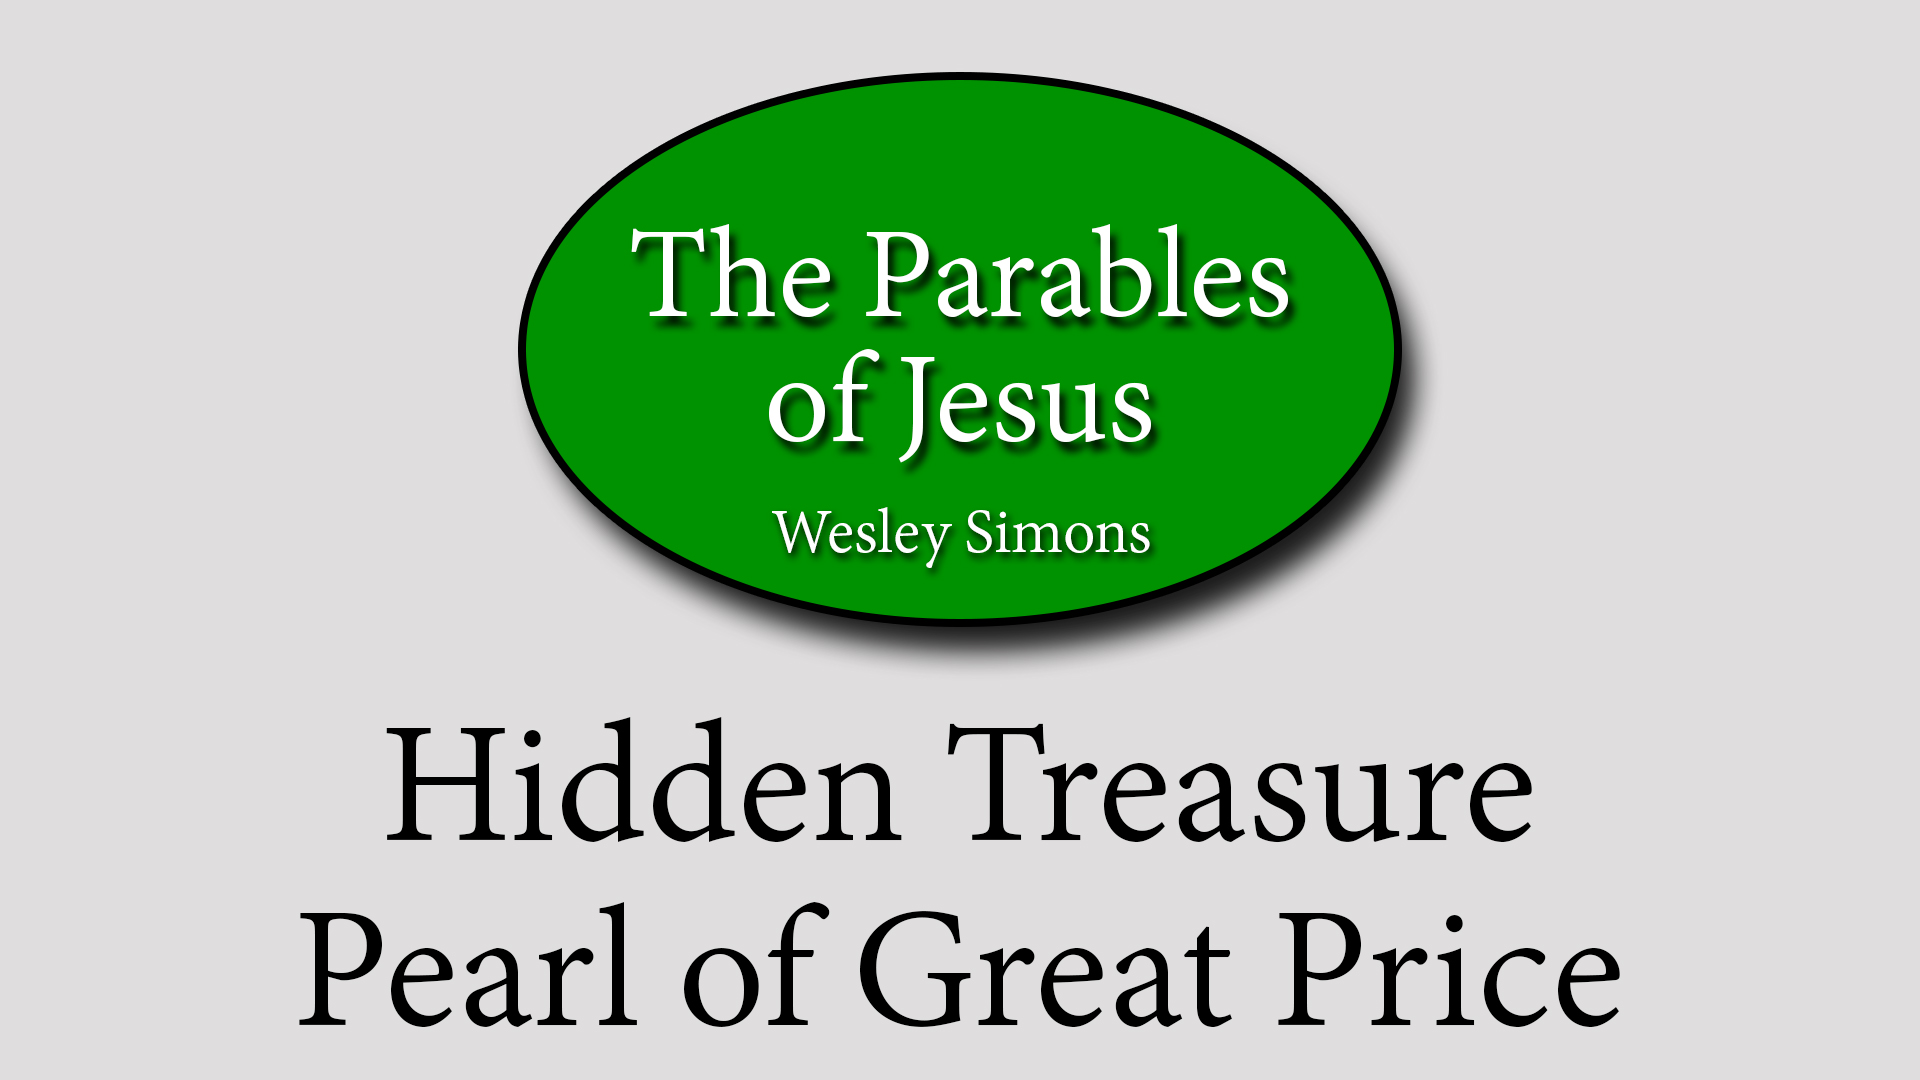 2  Hidden Treasure / Pearl of Great Price | Parables of Jesus